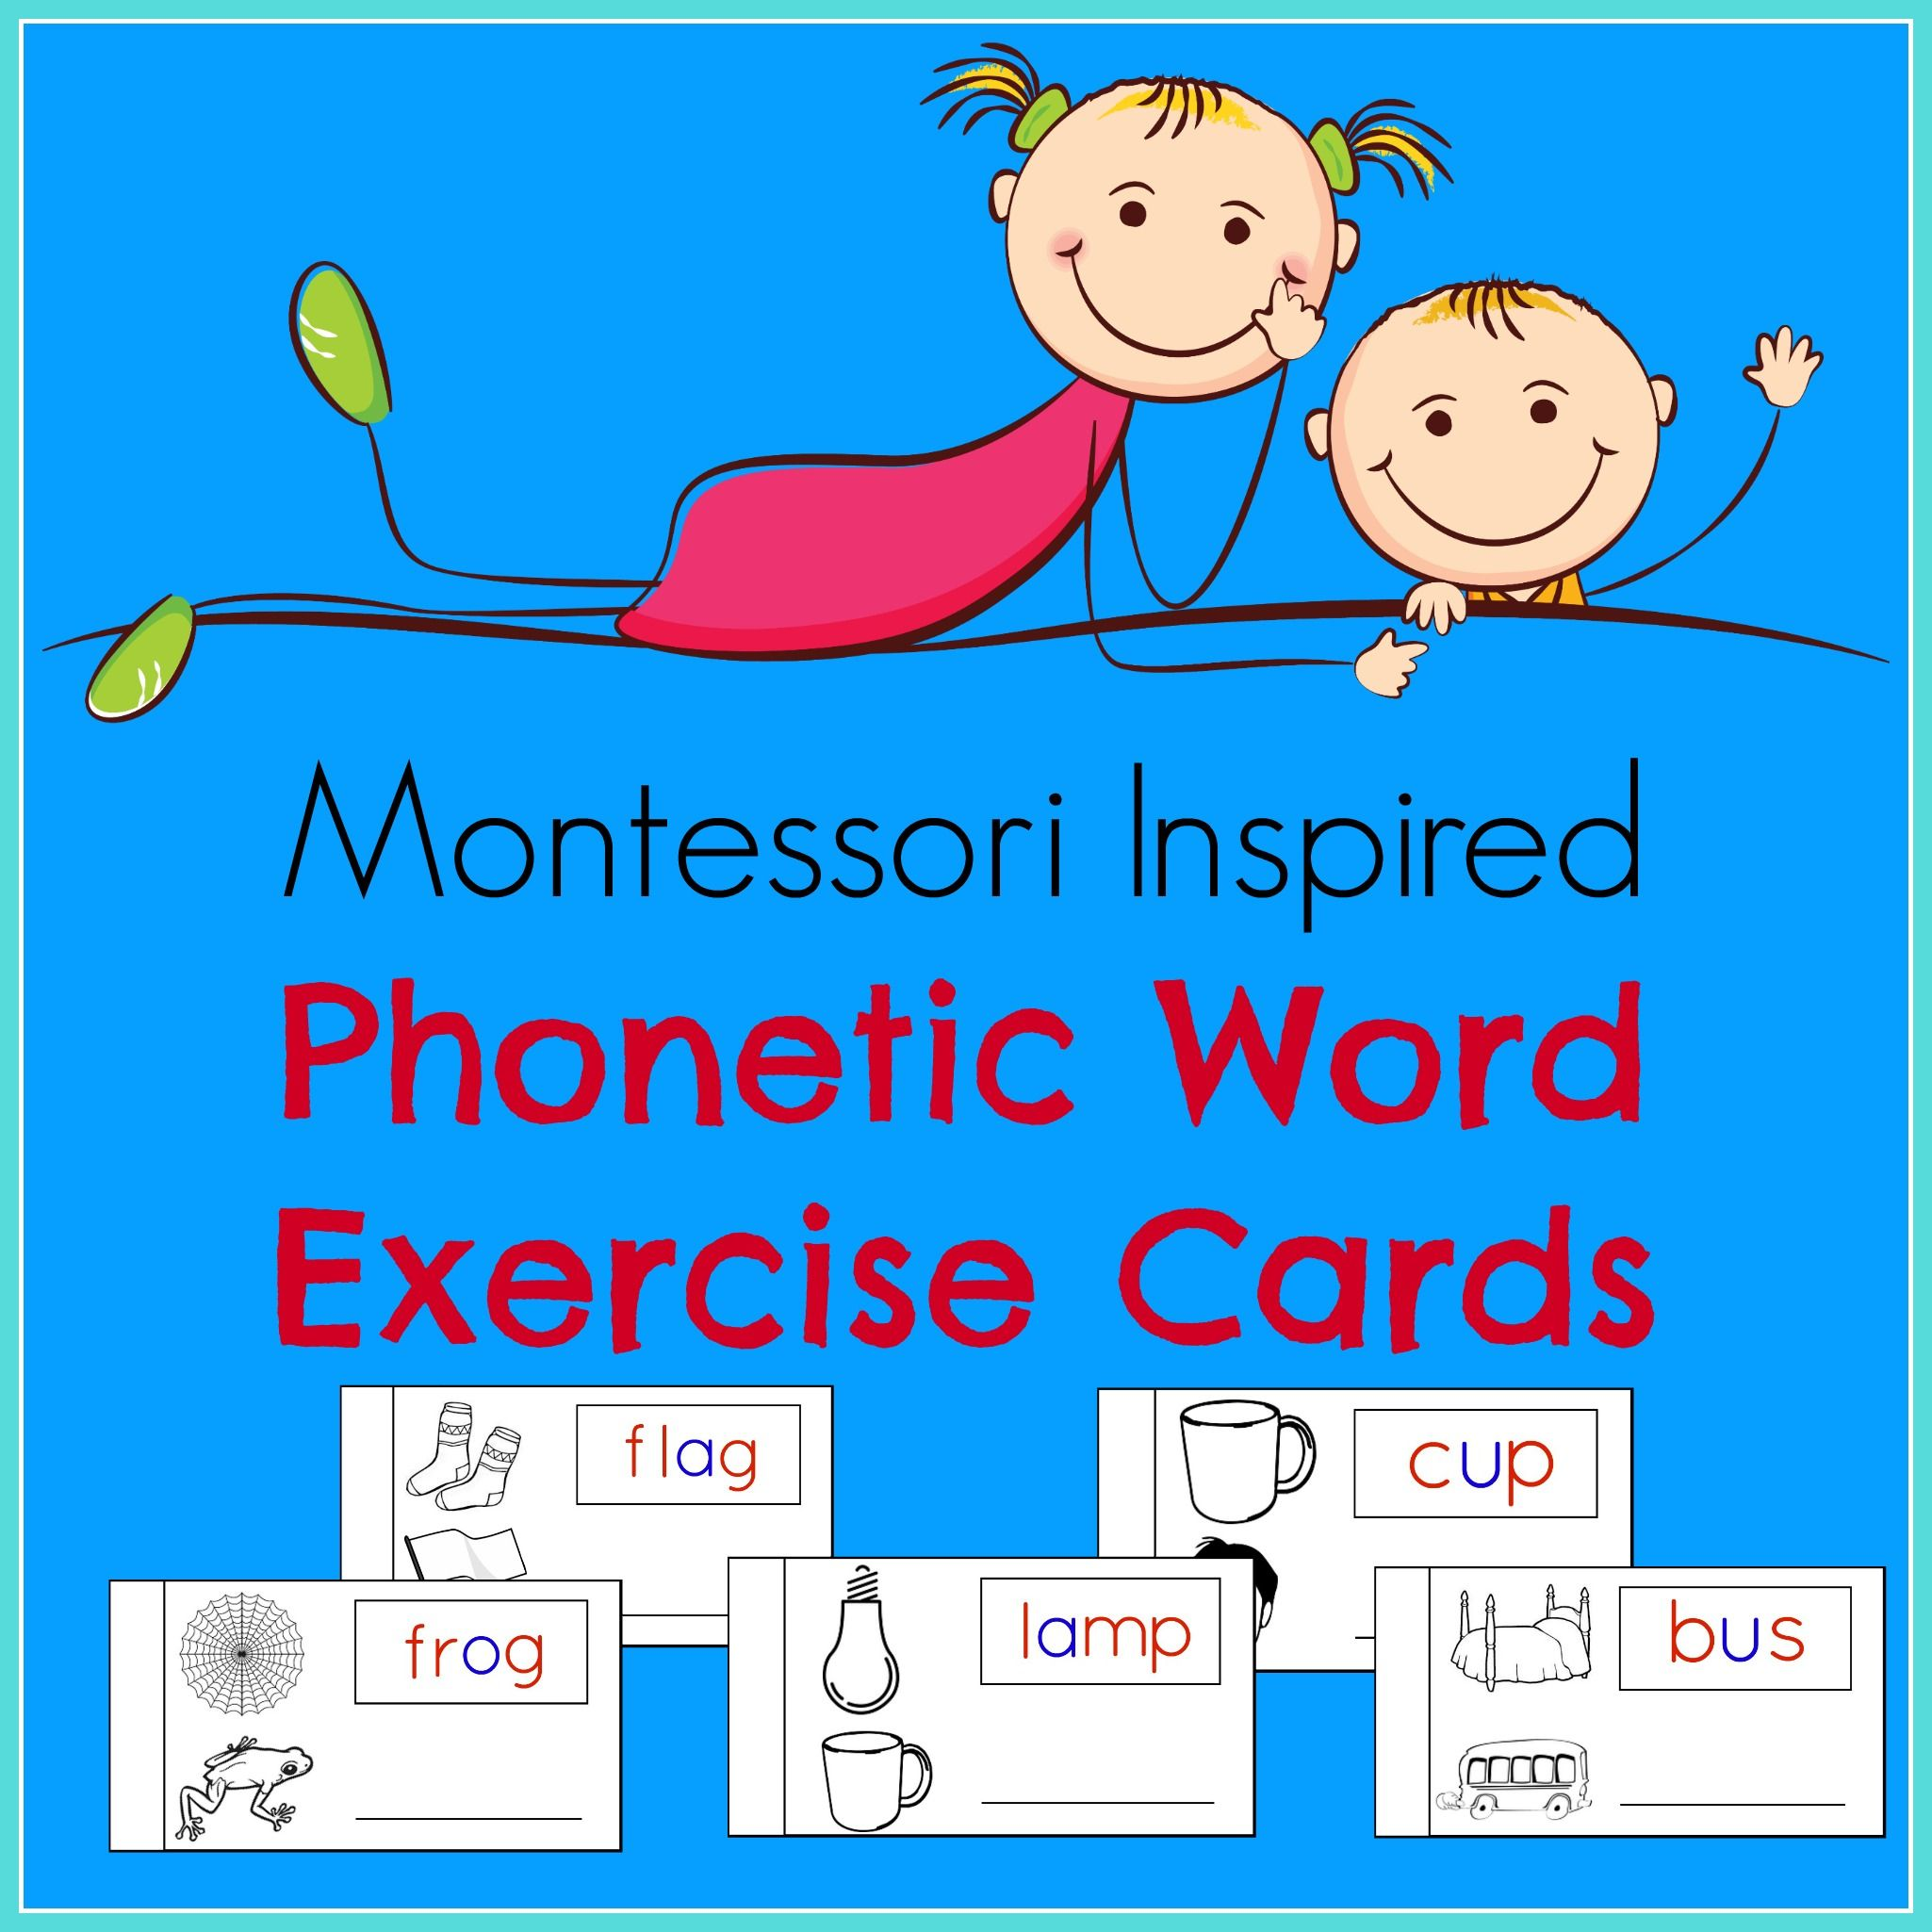 Phonetic Word Exercise Cards Contain 54 Phonetic Word